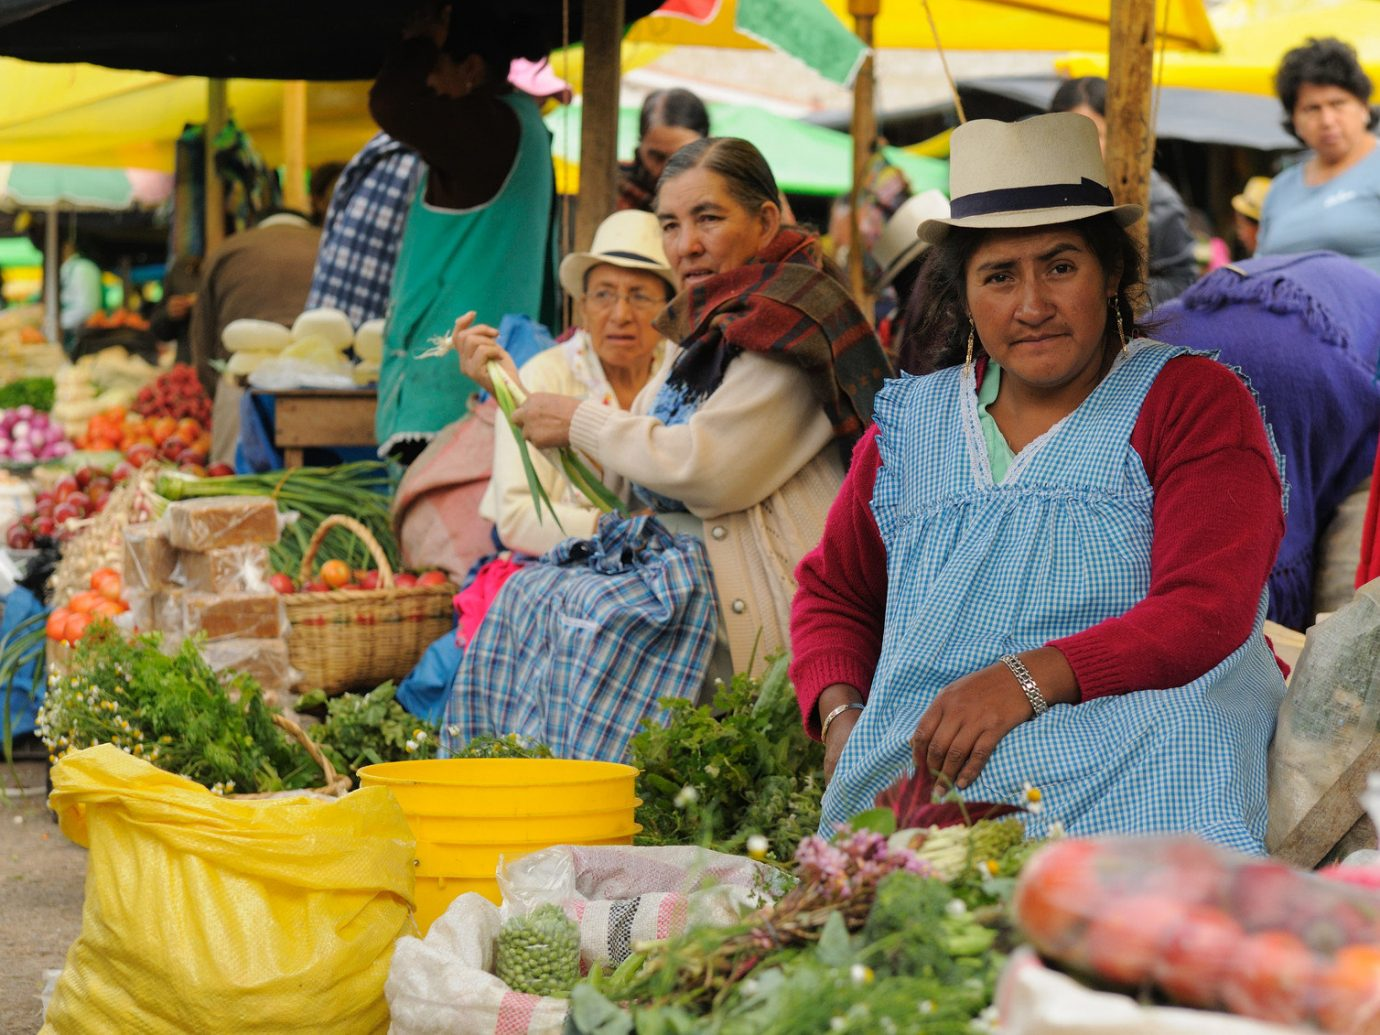 Trip Ideas person marketplace market City public space vendor human settlement food colorful